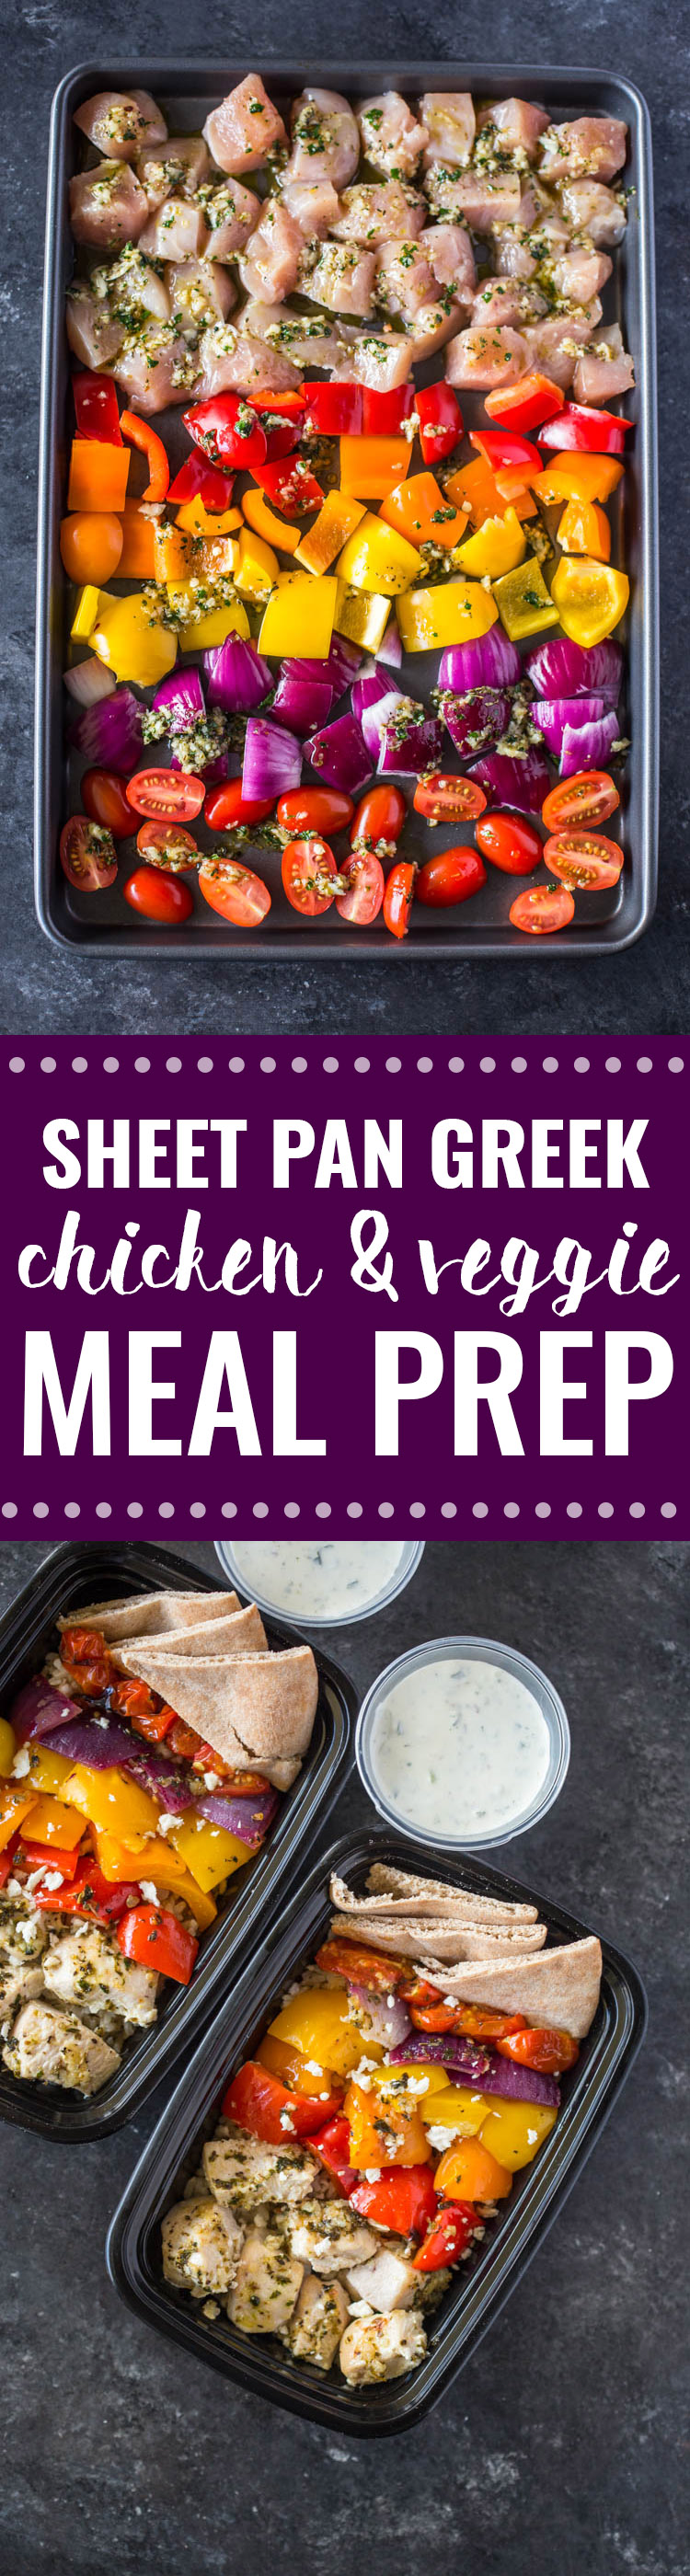 Meal-Prep Greek Chicken and Veggies with Tzatziki